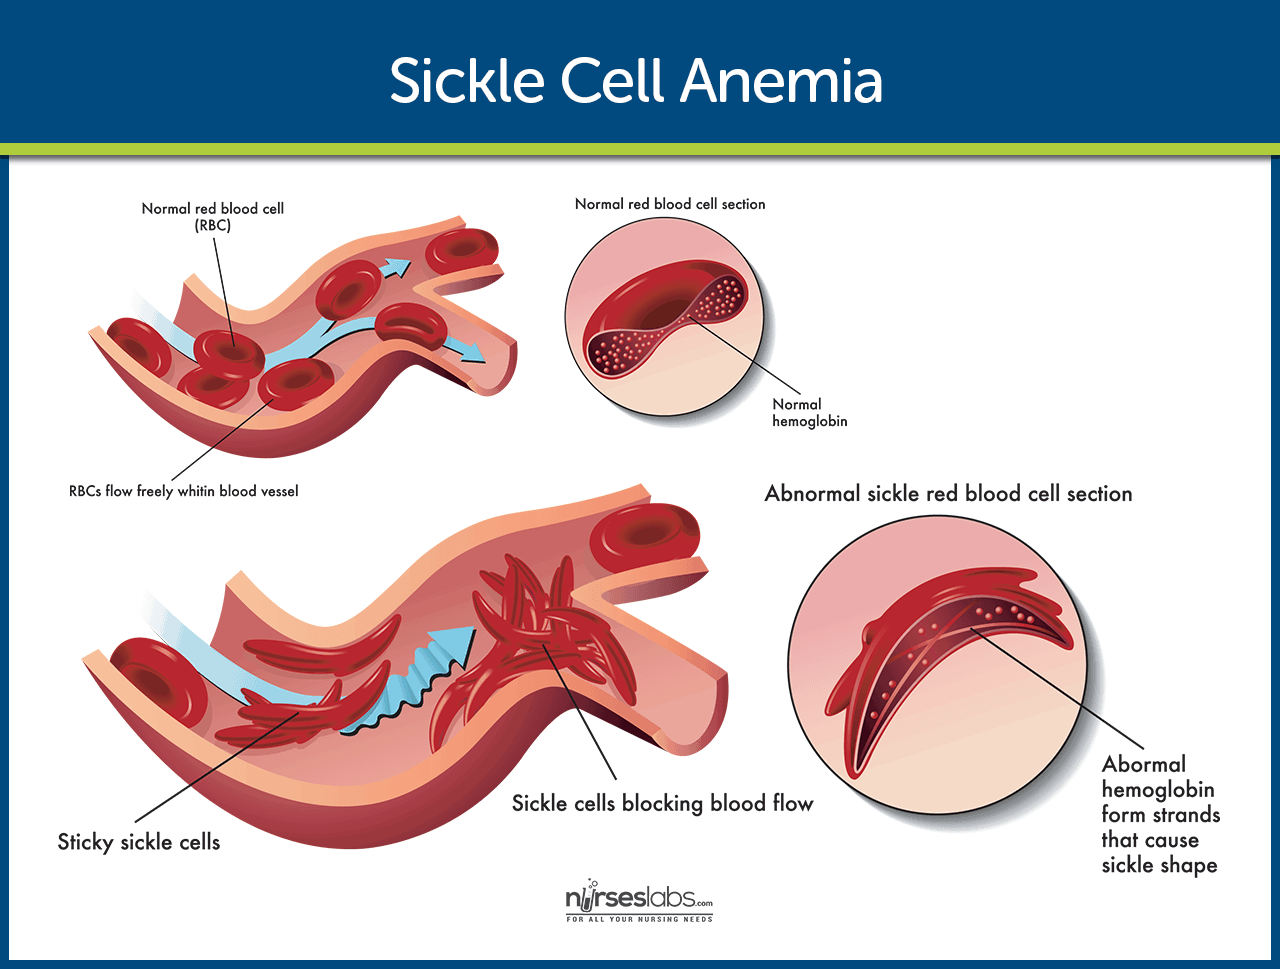 a study of sickle cell anemia Sickle cell anemia:  uganda, to enable the ministry of health to do a large cross-sectional research study, the uganda sickle surveillance study (us3),.